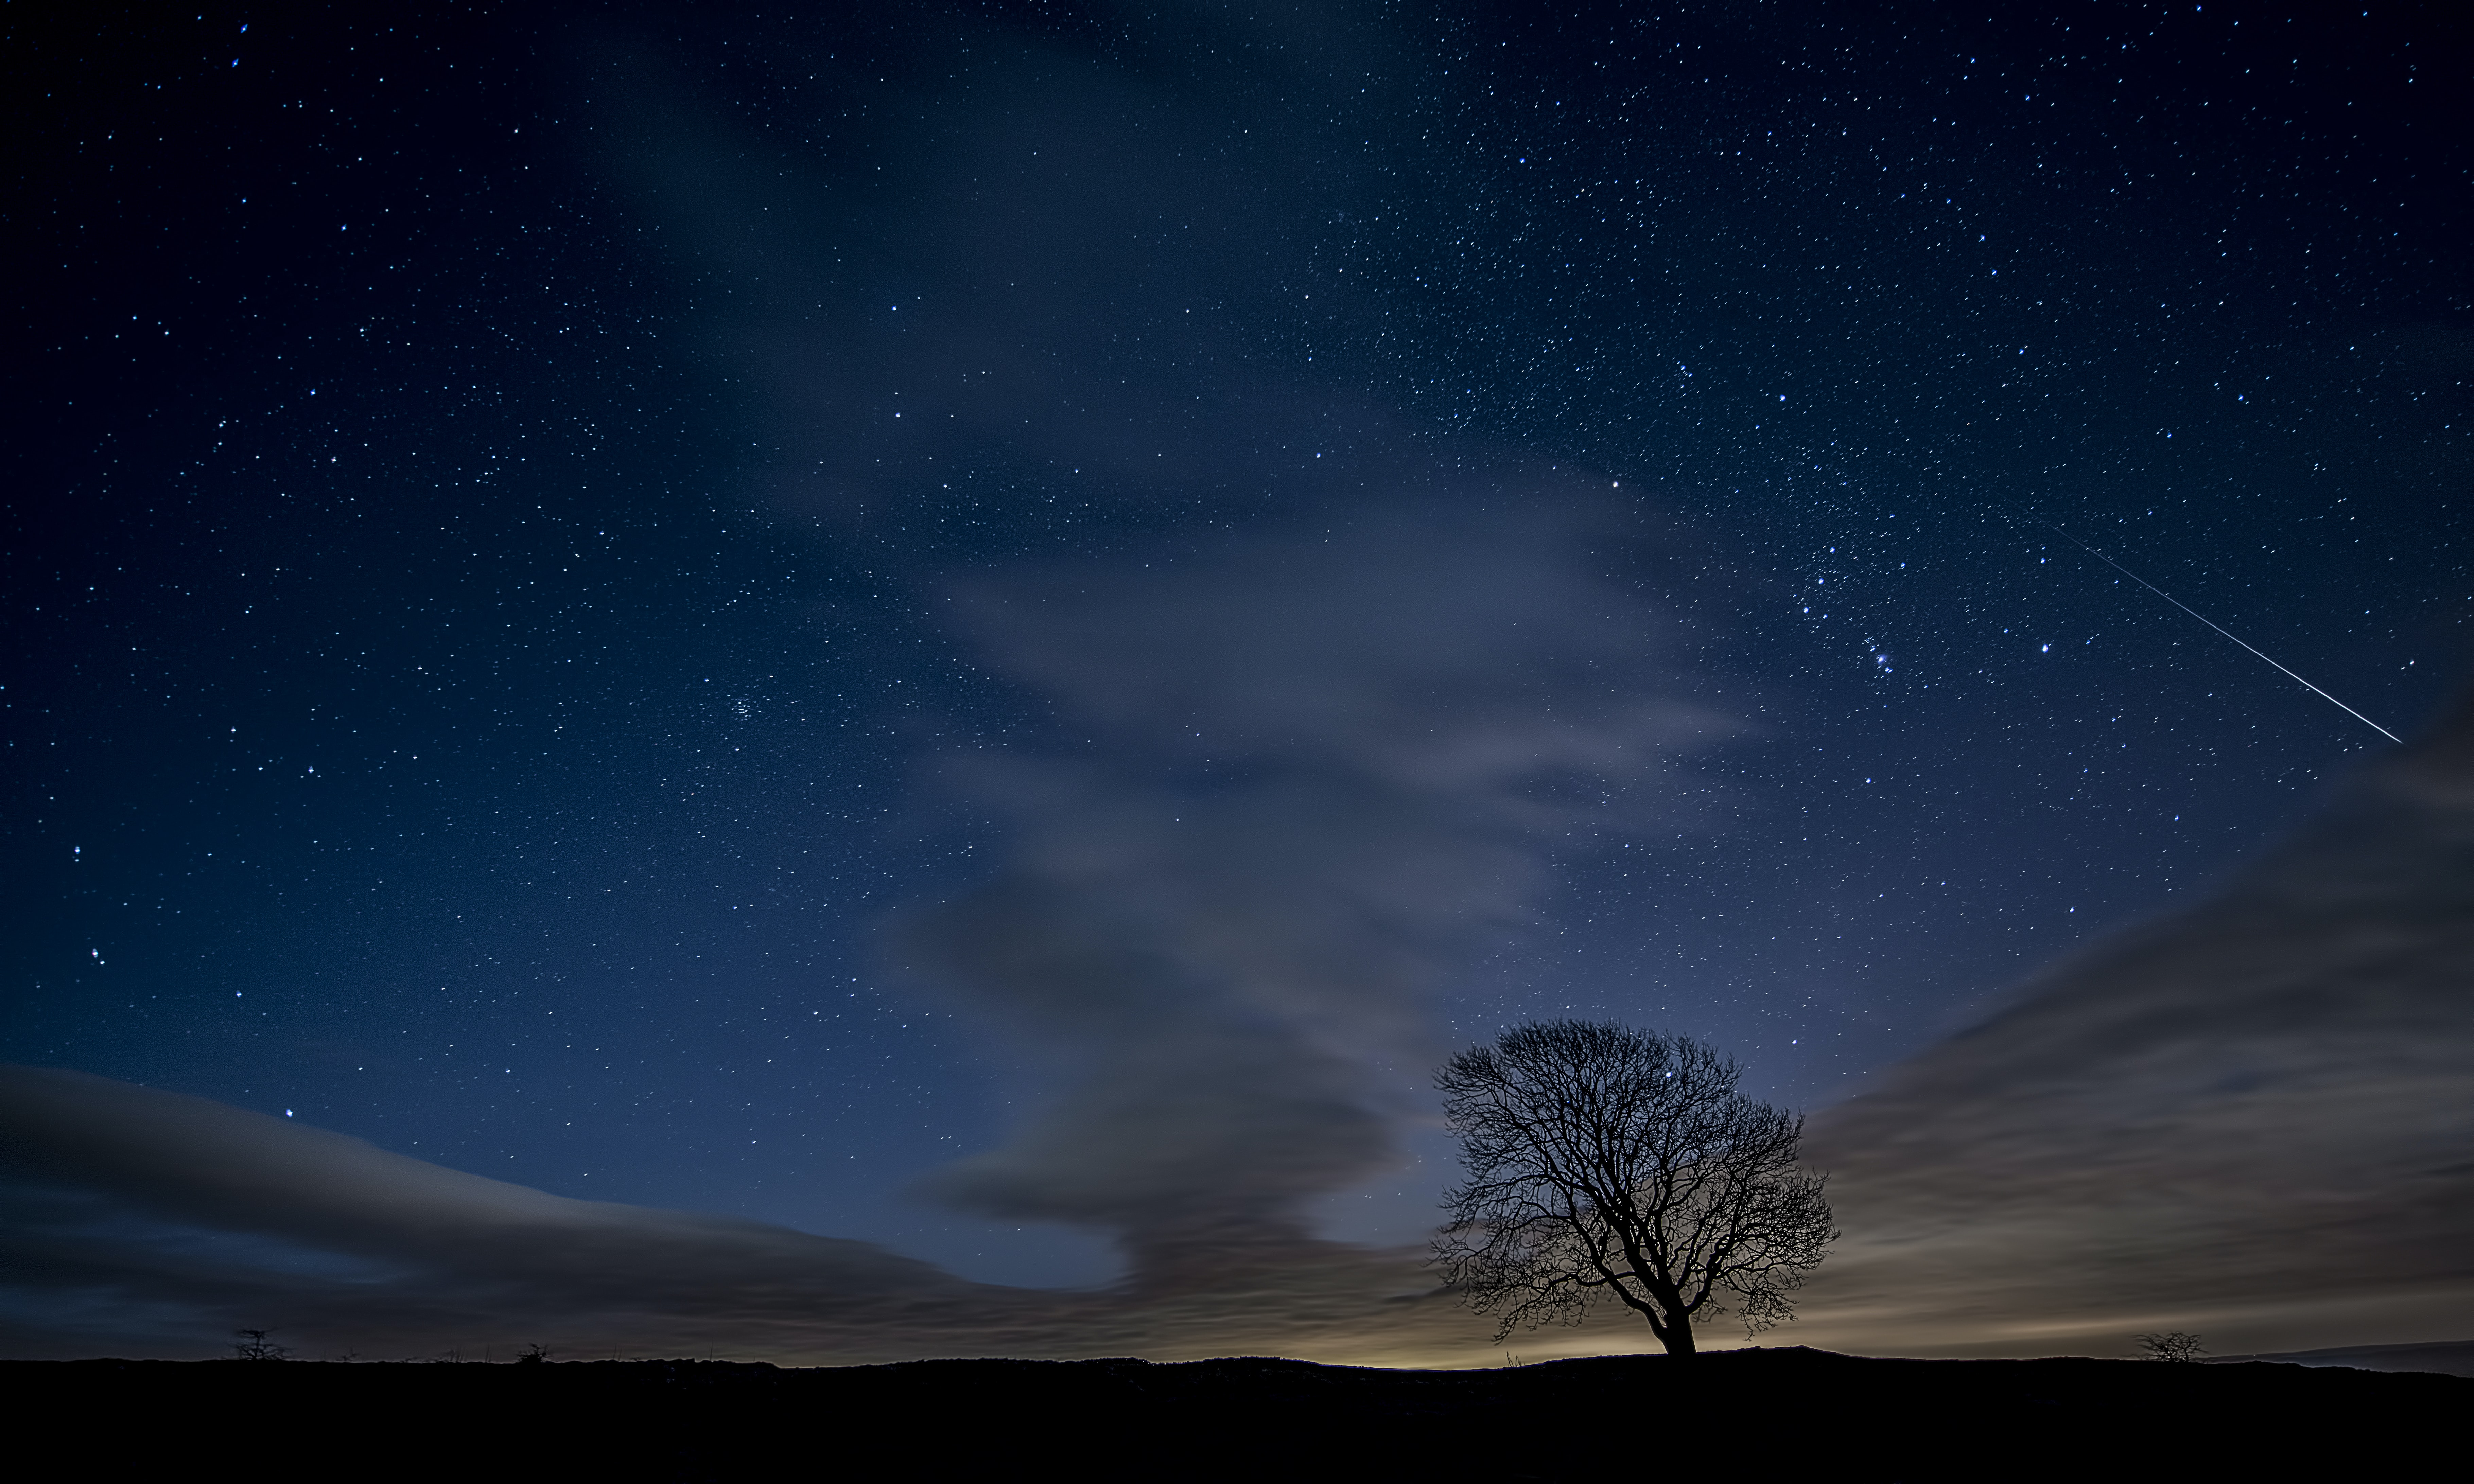 A night-time background featuring a blue sky with gusty dark clouds in Malham Cove